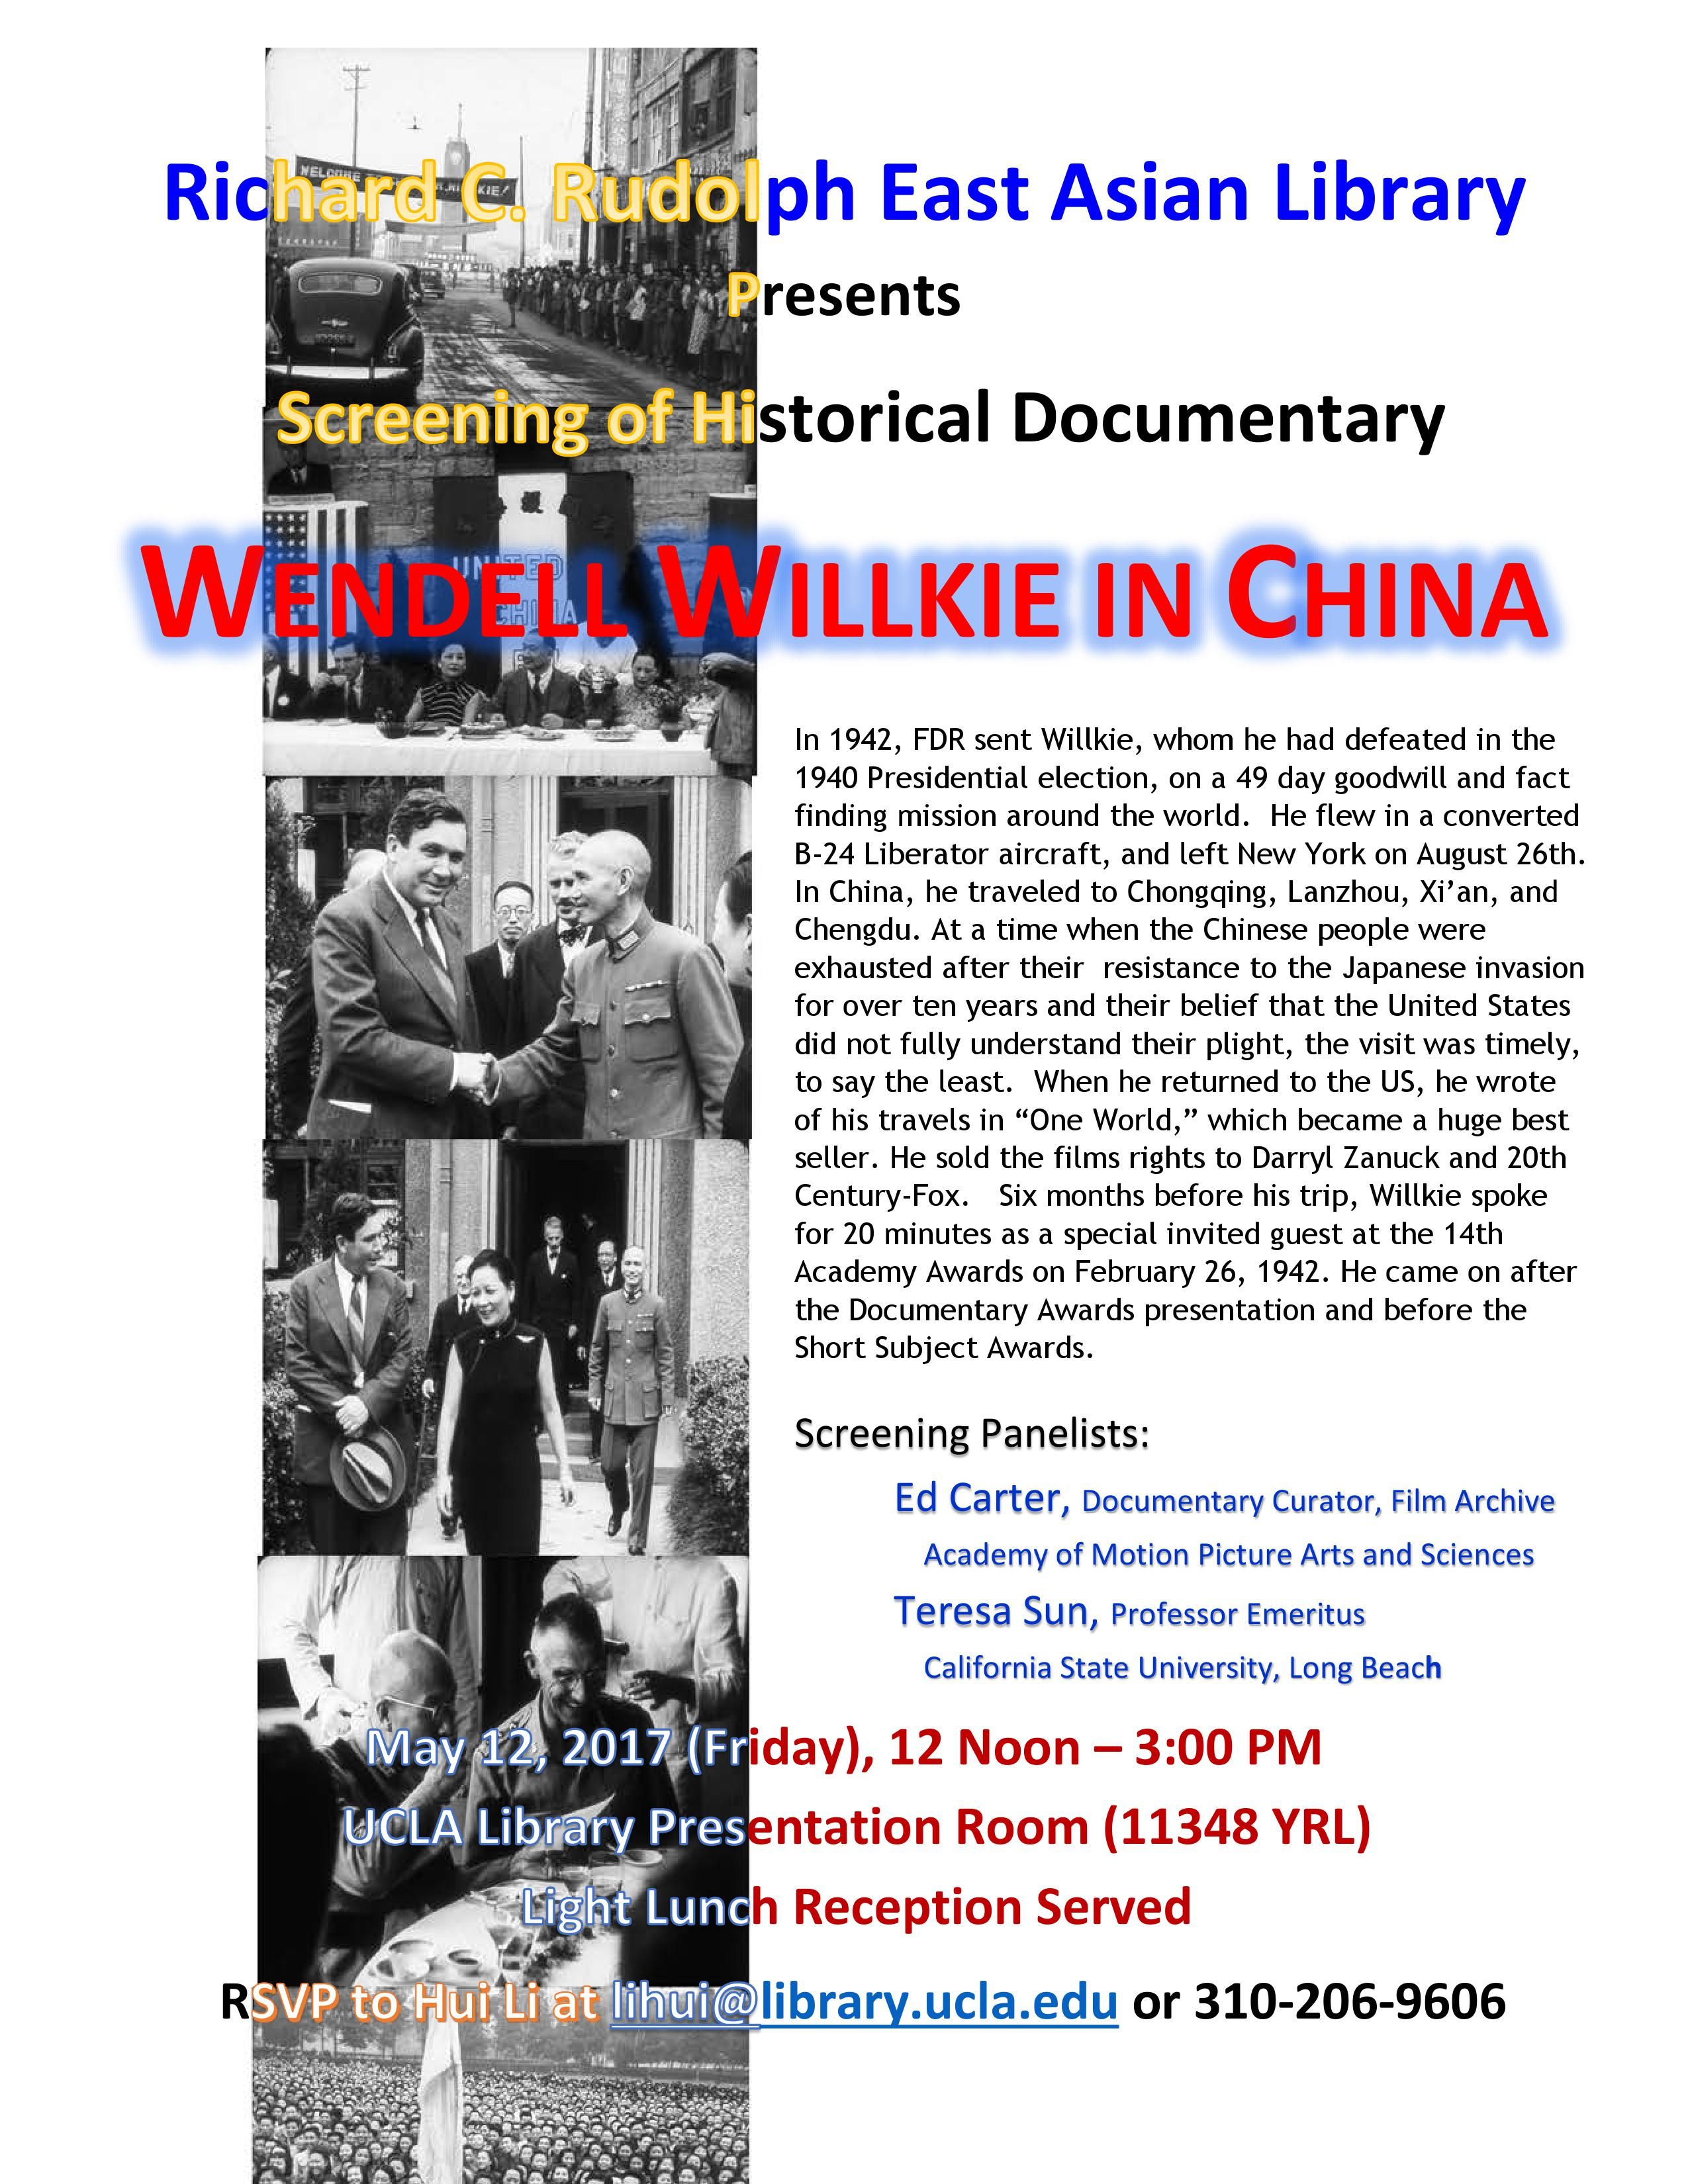 Screening of Historical Documentary: Wendell Willkie in China